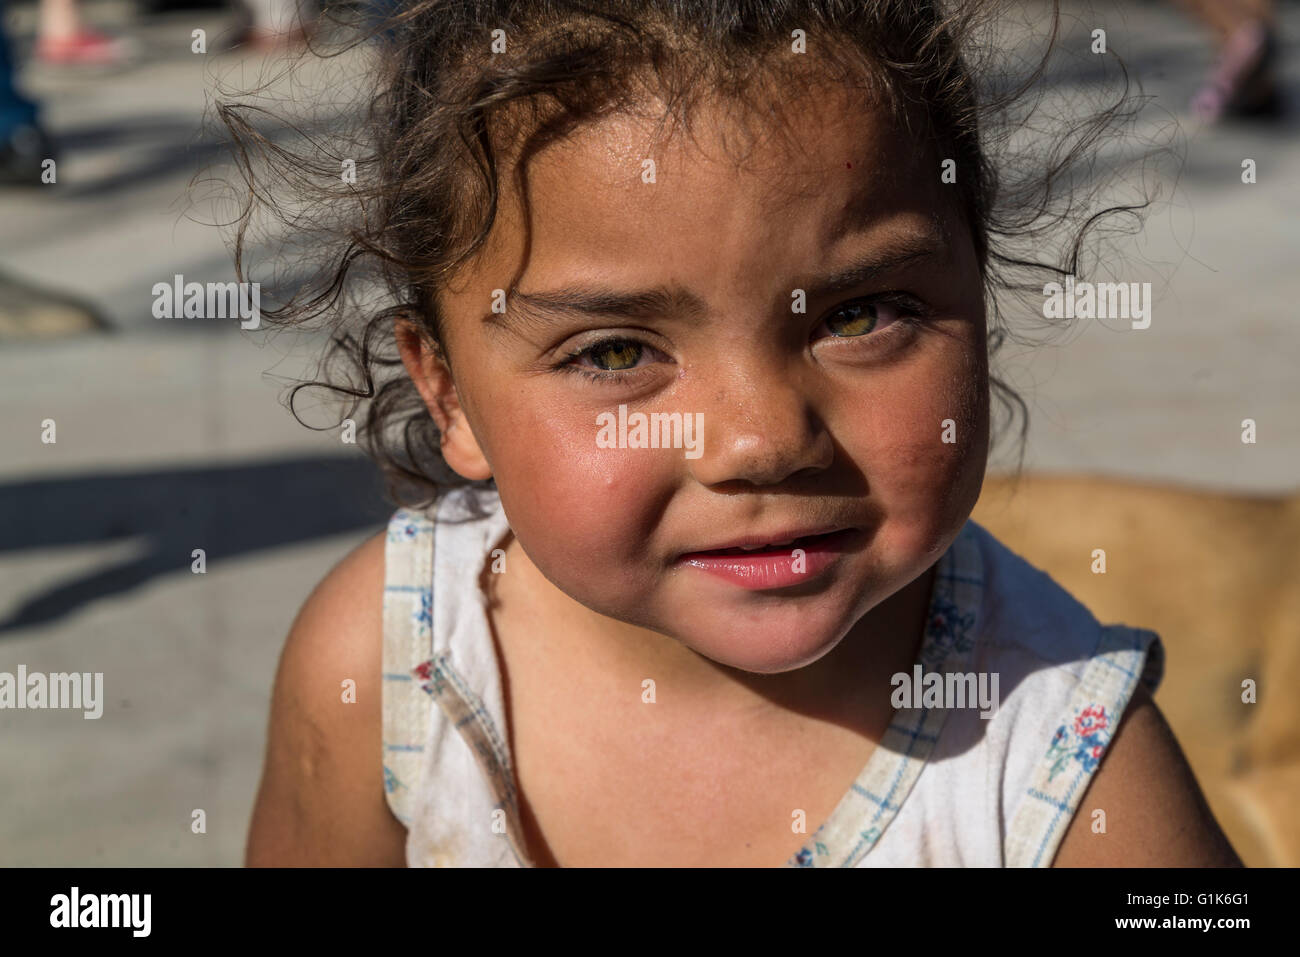 Little girl with messy face, Feria de Mataderos, Buenos Aires, Argentina - Stock Image